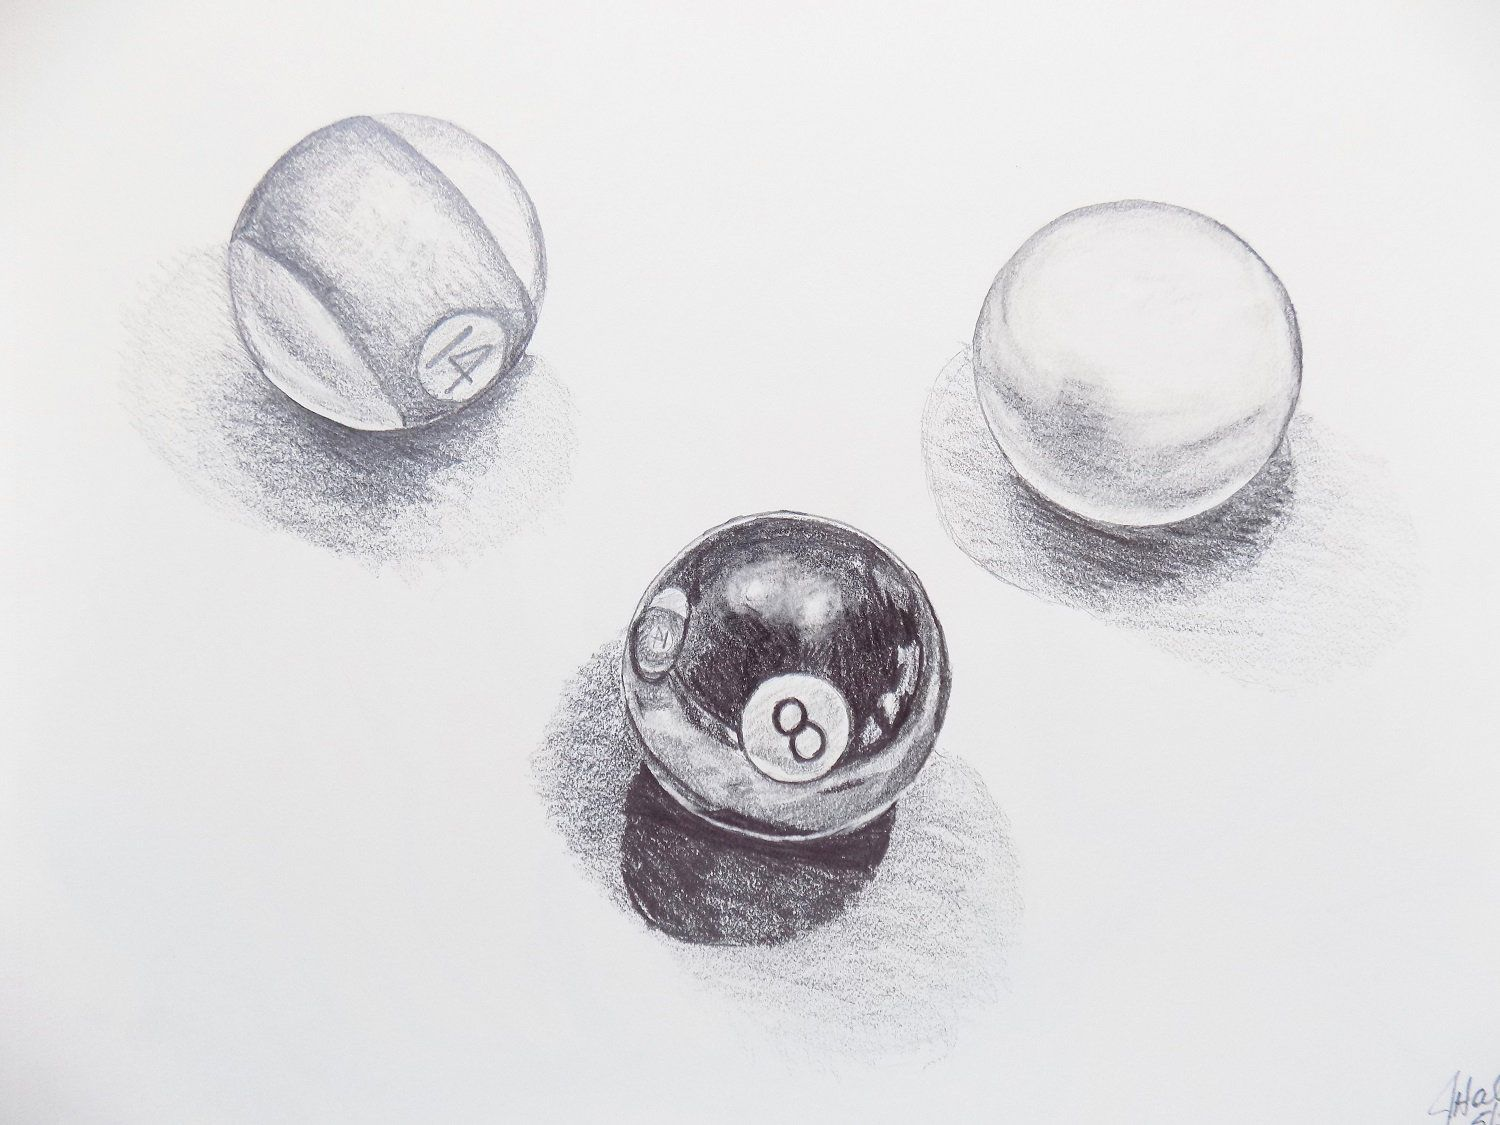 drawing pool graphite sold pencil ball sketches drawings